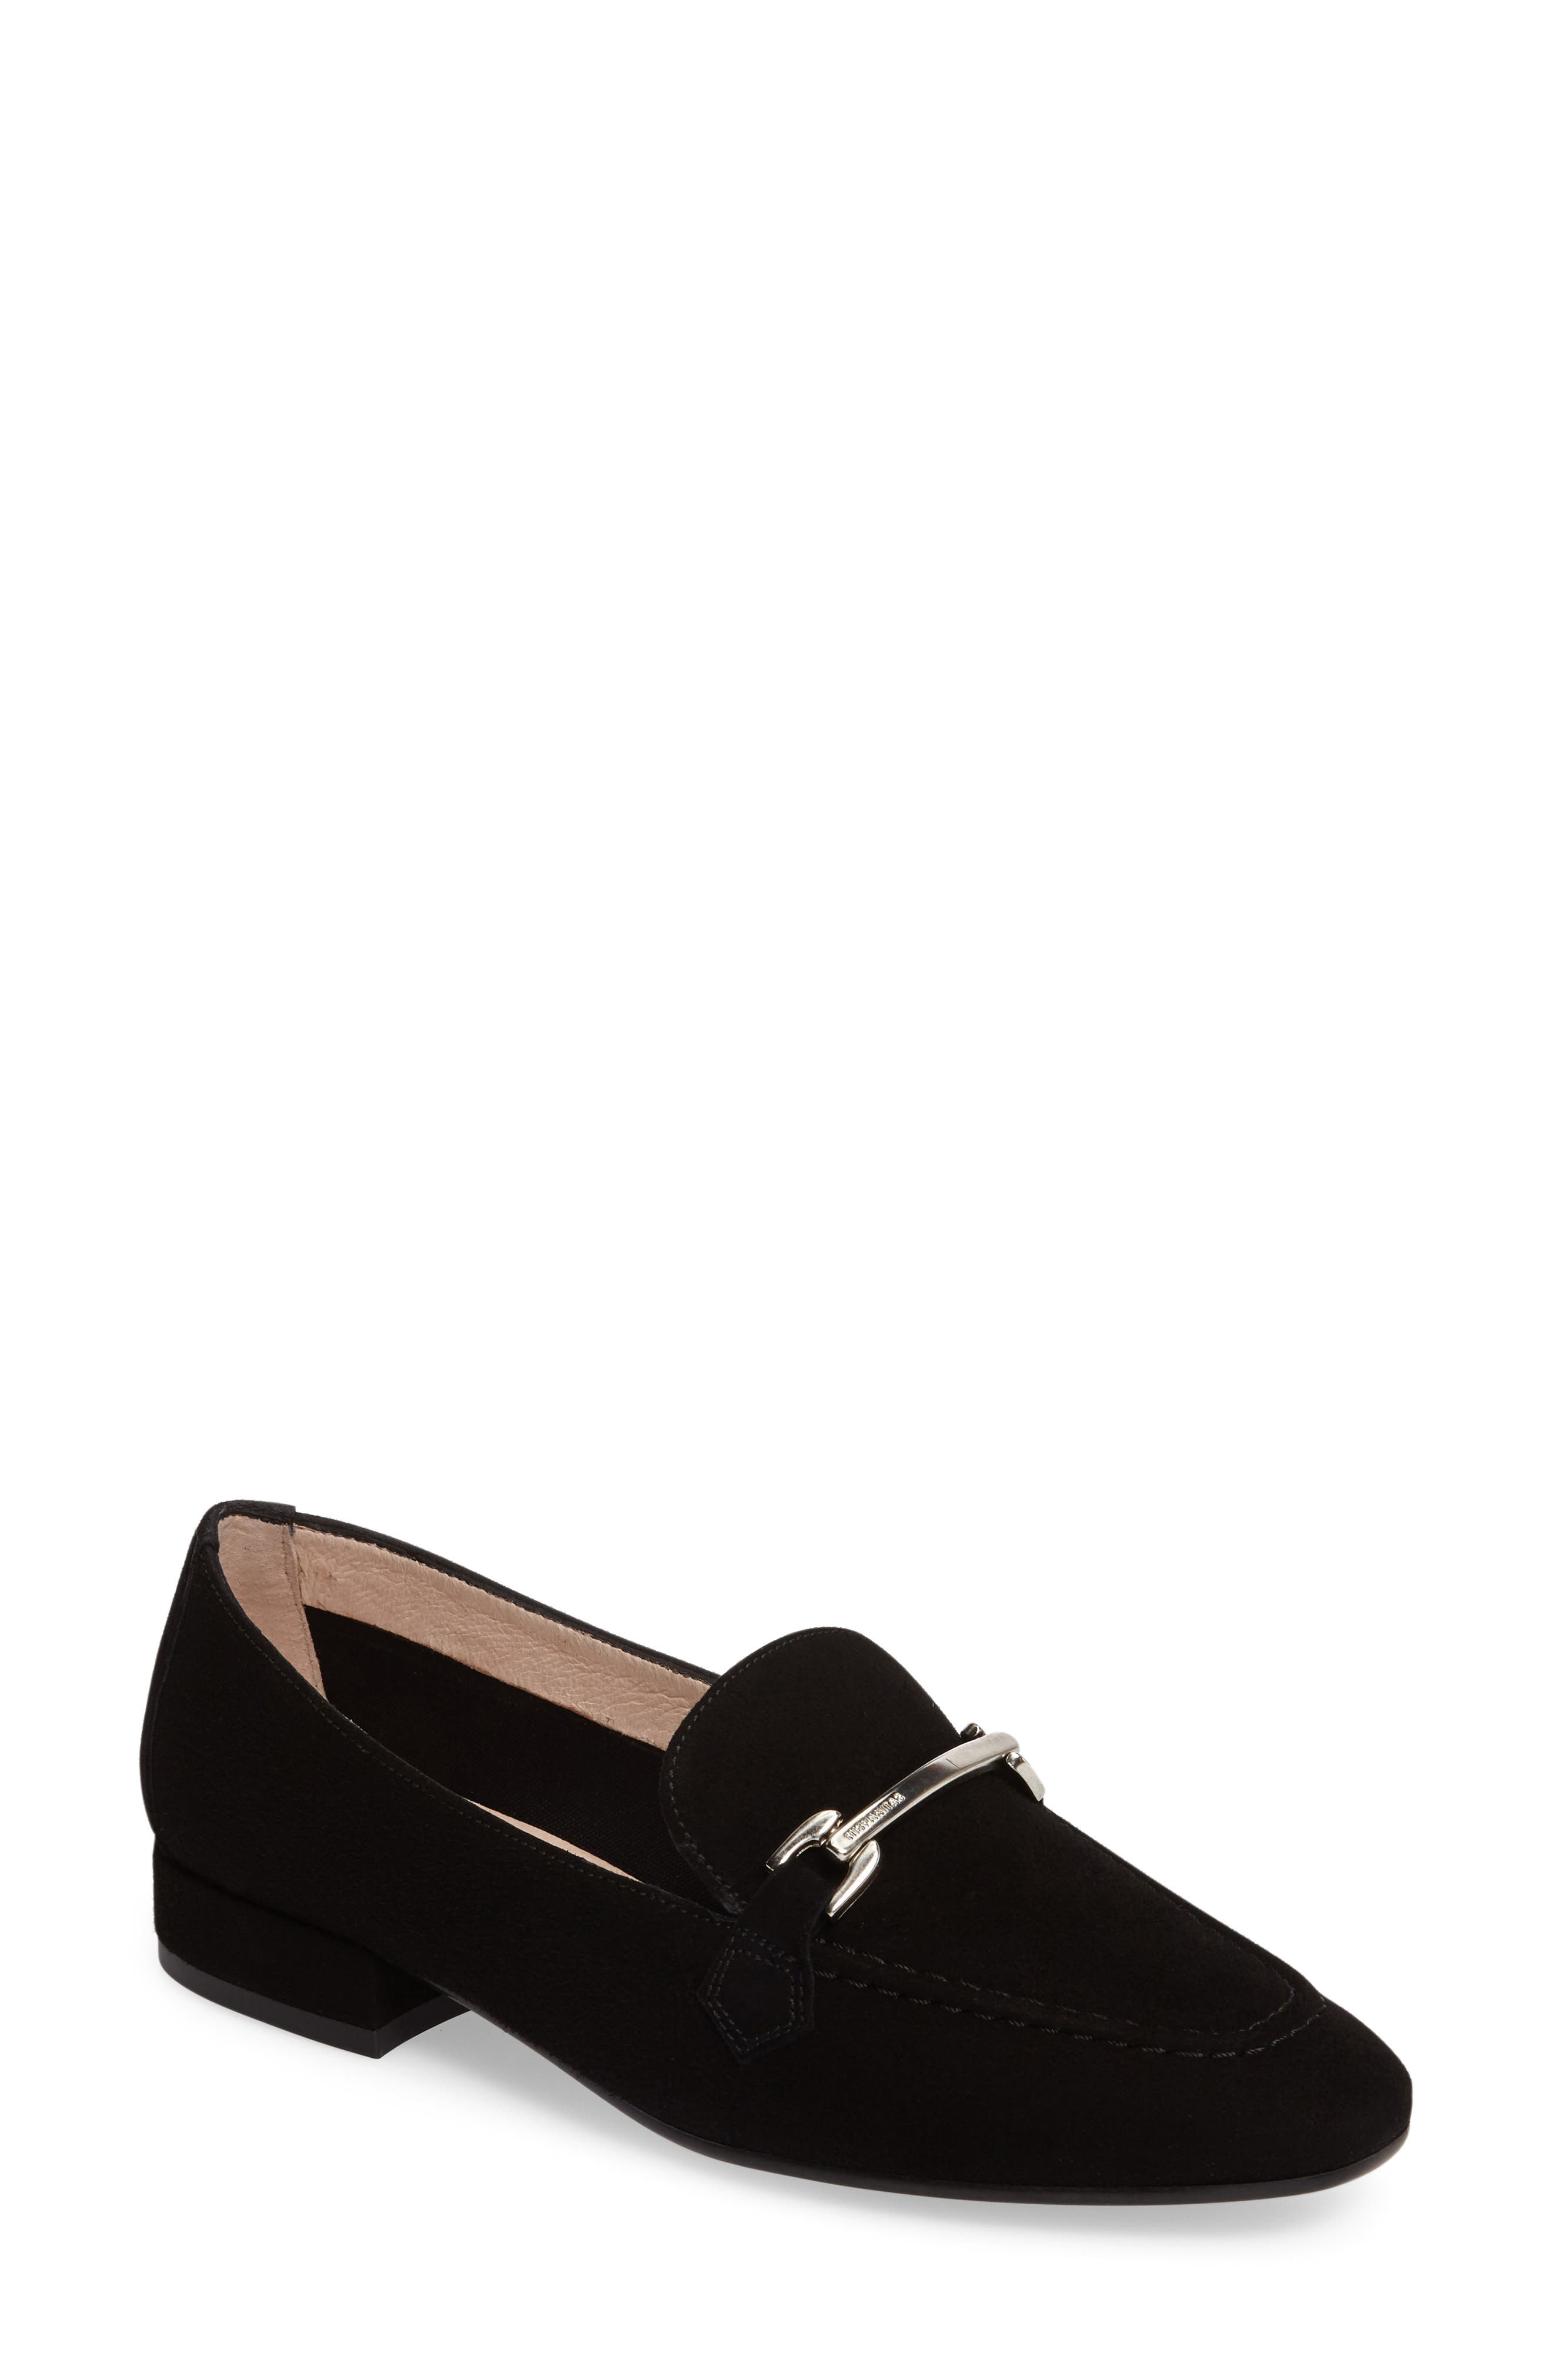 Evelyn Loafer,                             Main thumbnail 1, color,                             BLACK FABRIC